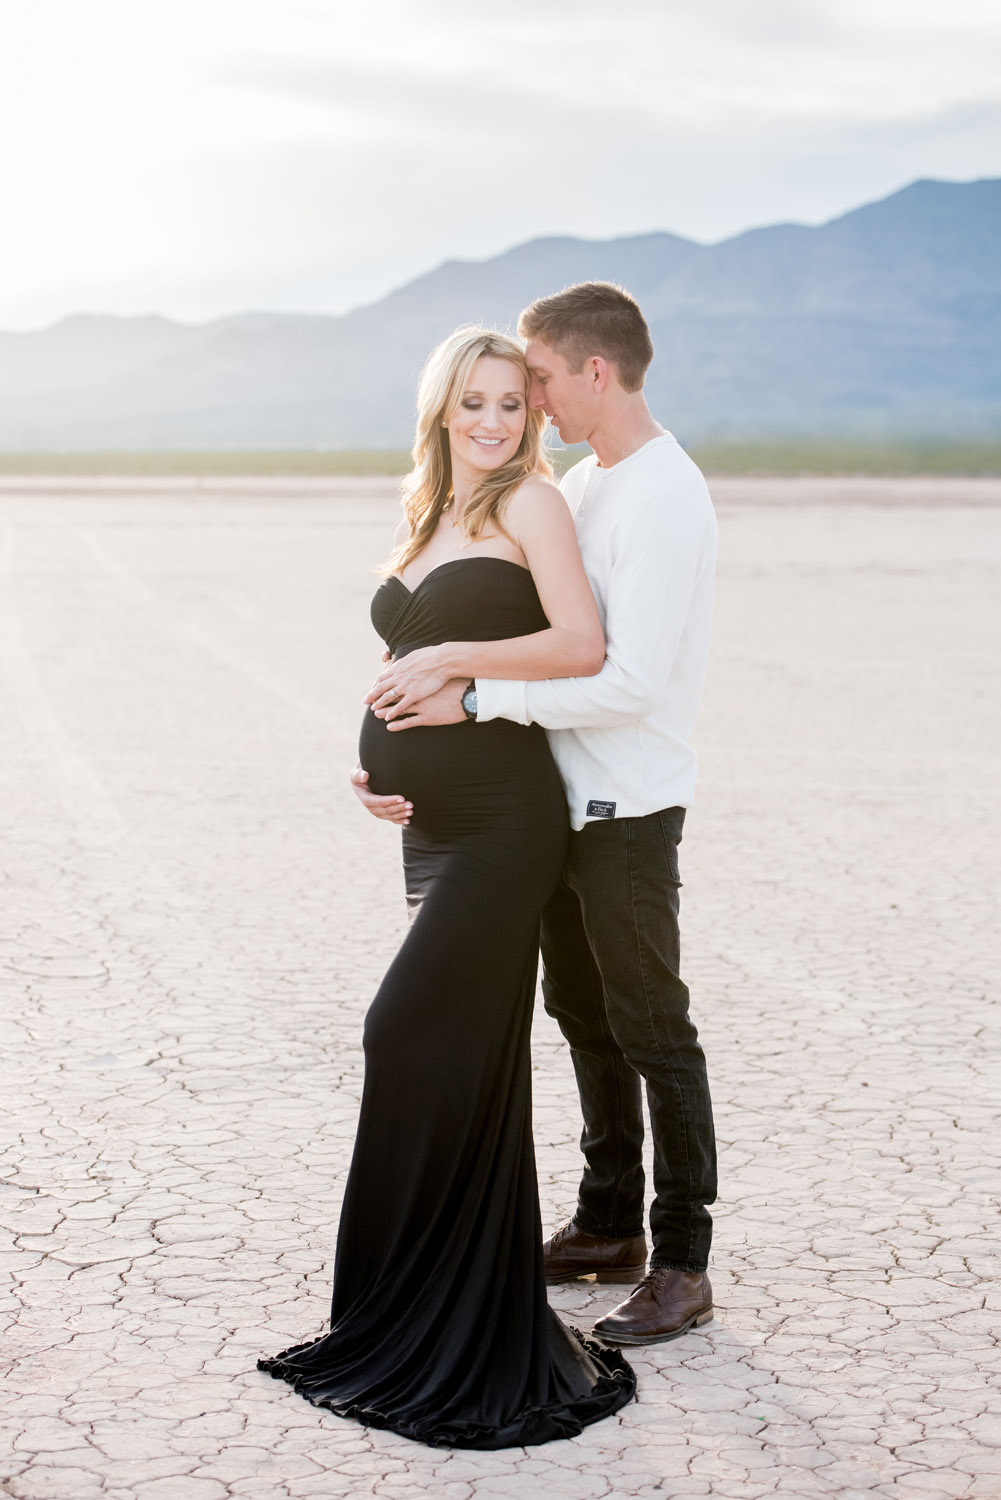 Maternity + Newborn Portrait Sessions | Kristen Marie Weddings + Portraits, Las Vegas family photographer